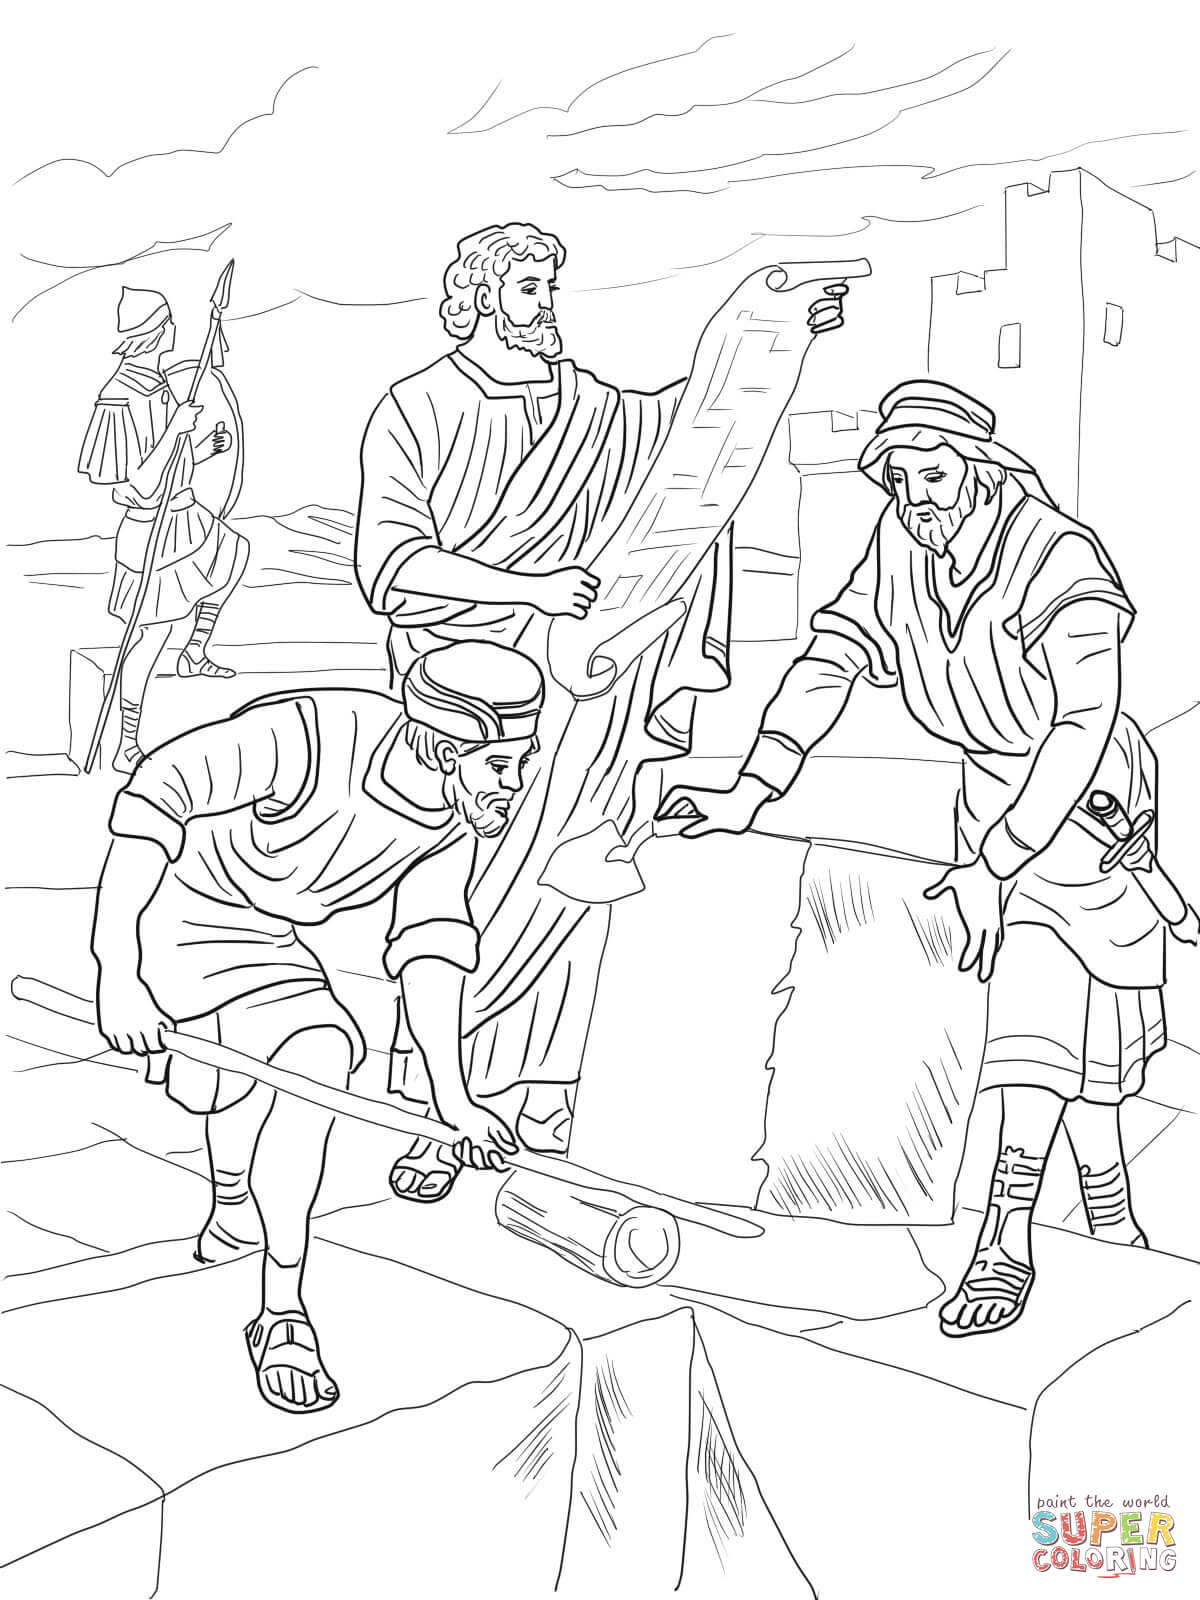 Click the nehemiah rebuilding the walls of jerusalem coloring pages